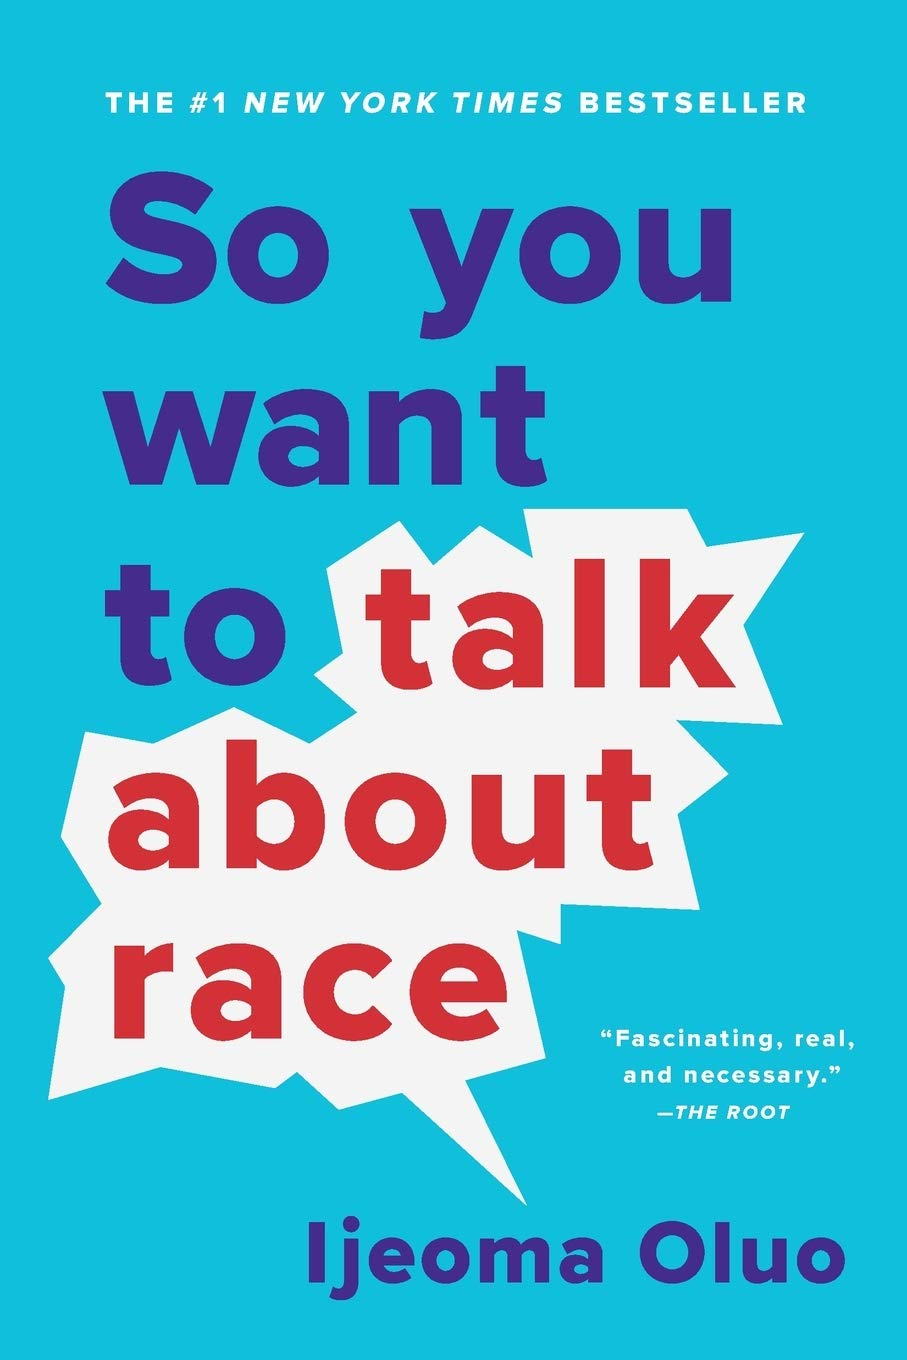 So You Want to Talk About Race: Oluo, Ijeoma: 9781580058827: Books ...